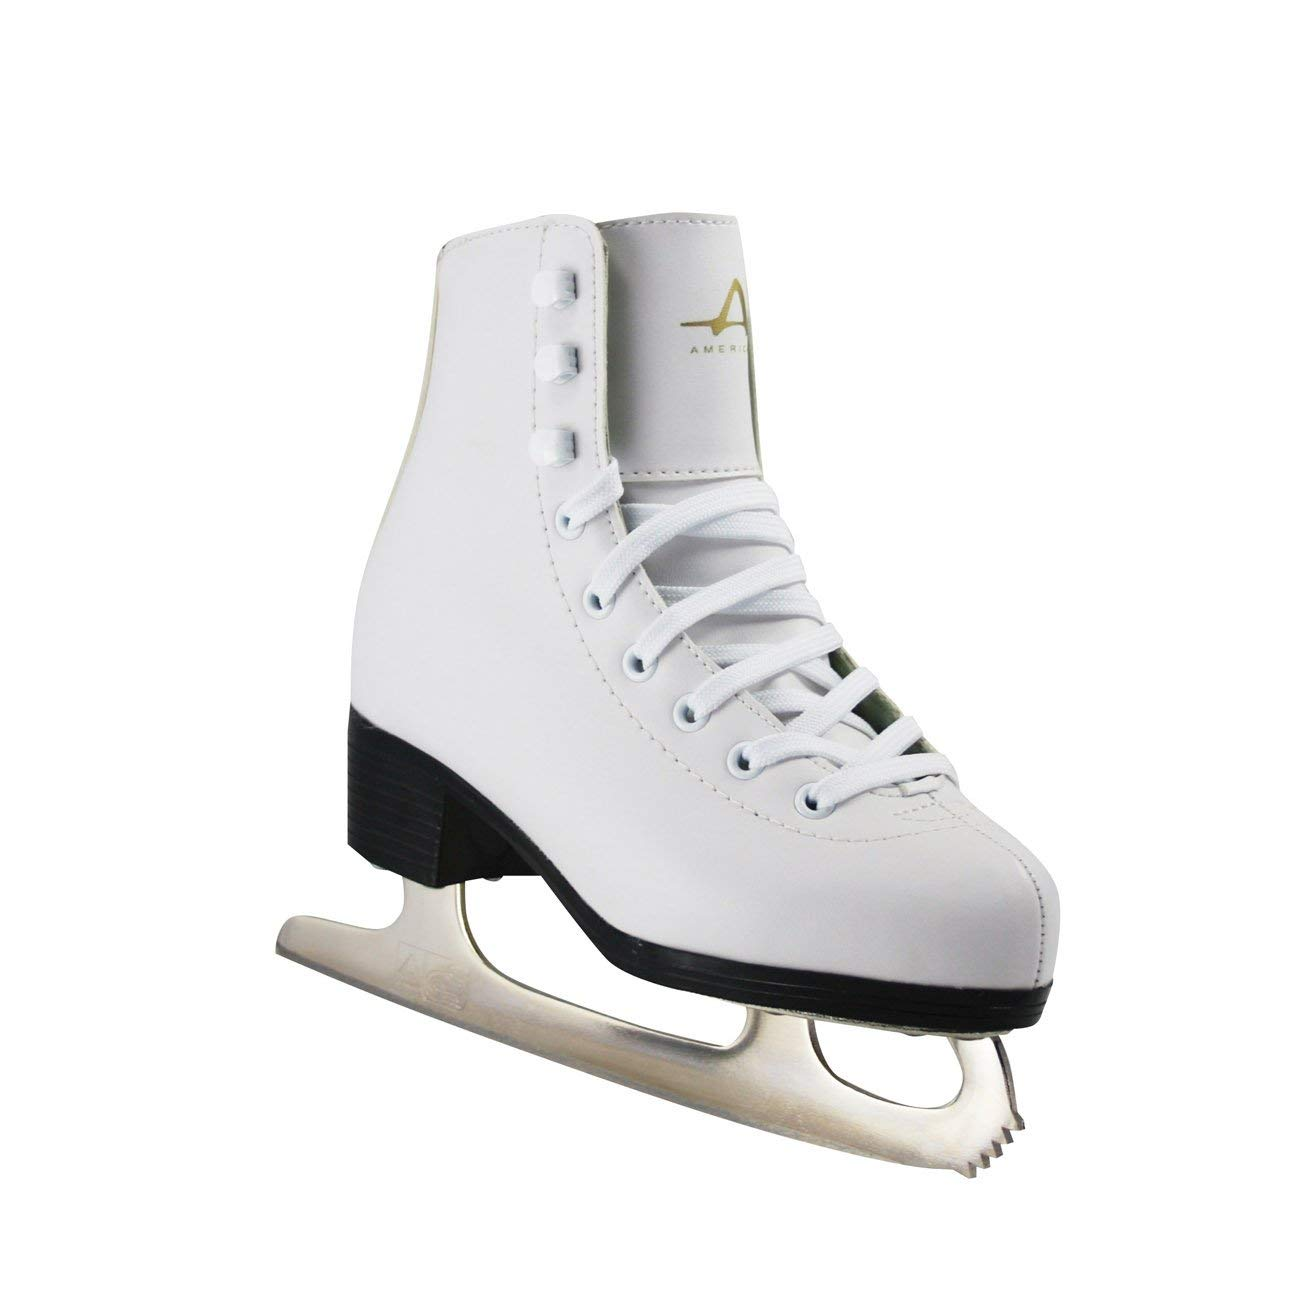 American Athletic Shoe Girls Tricot Lined Ice Skates Renewed